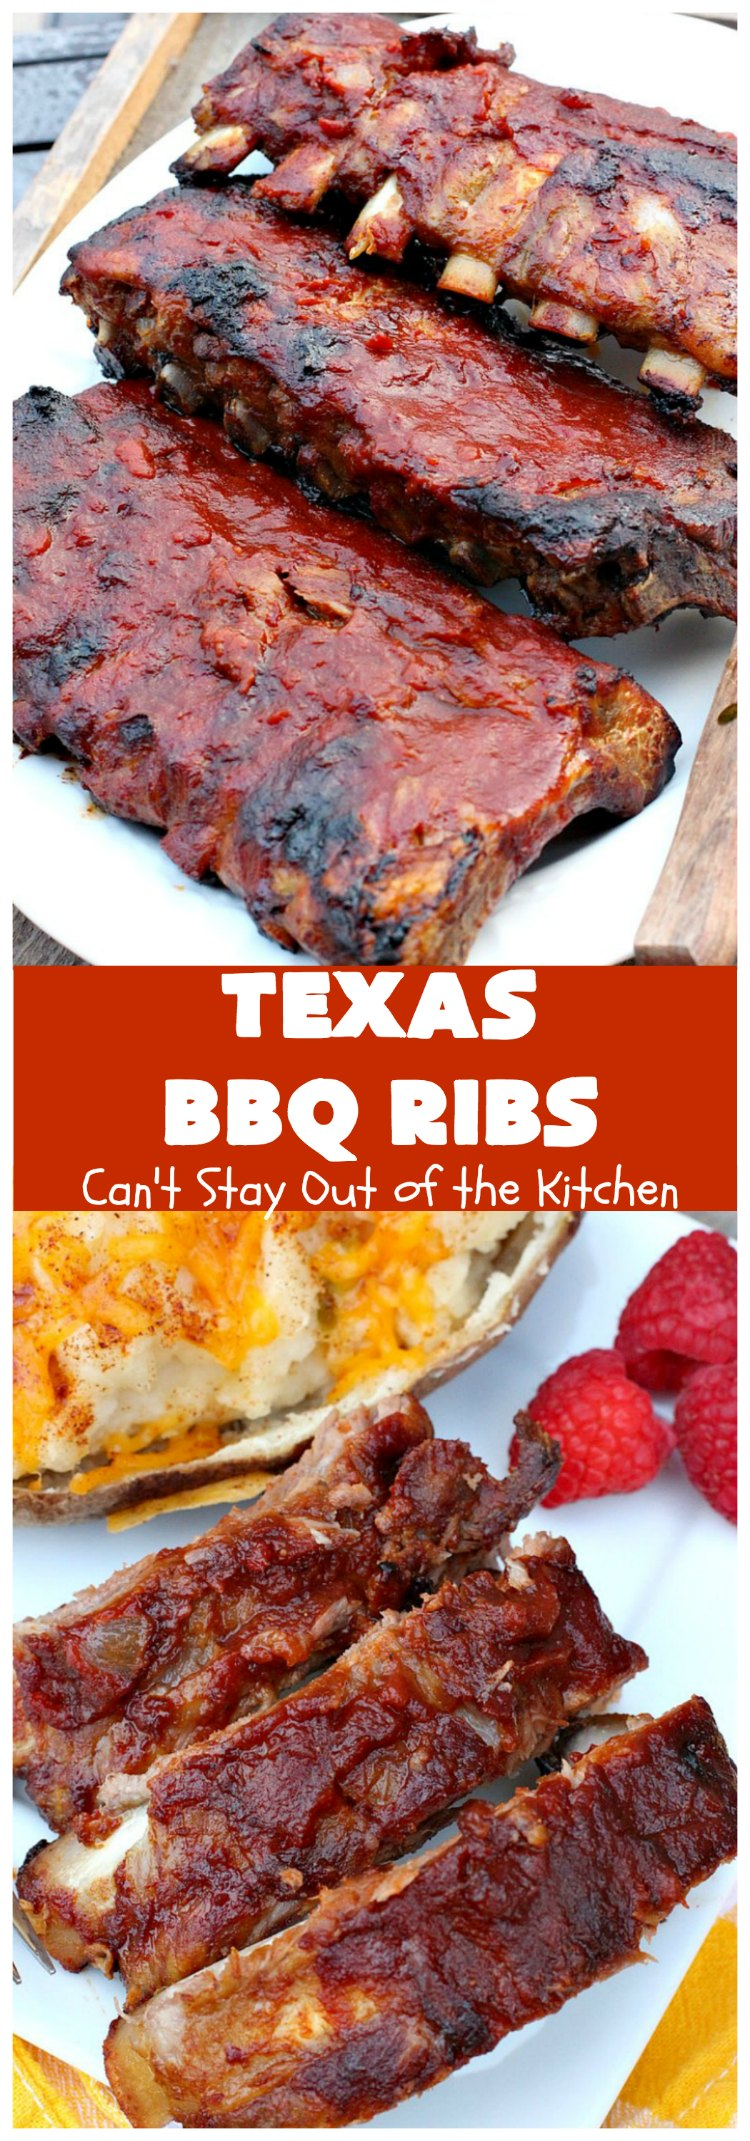 Texas BBQ Ribs | Can't Stay Out of the Kitchen